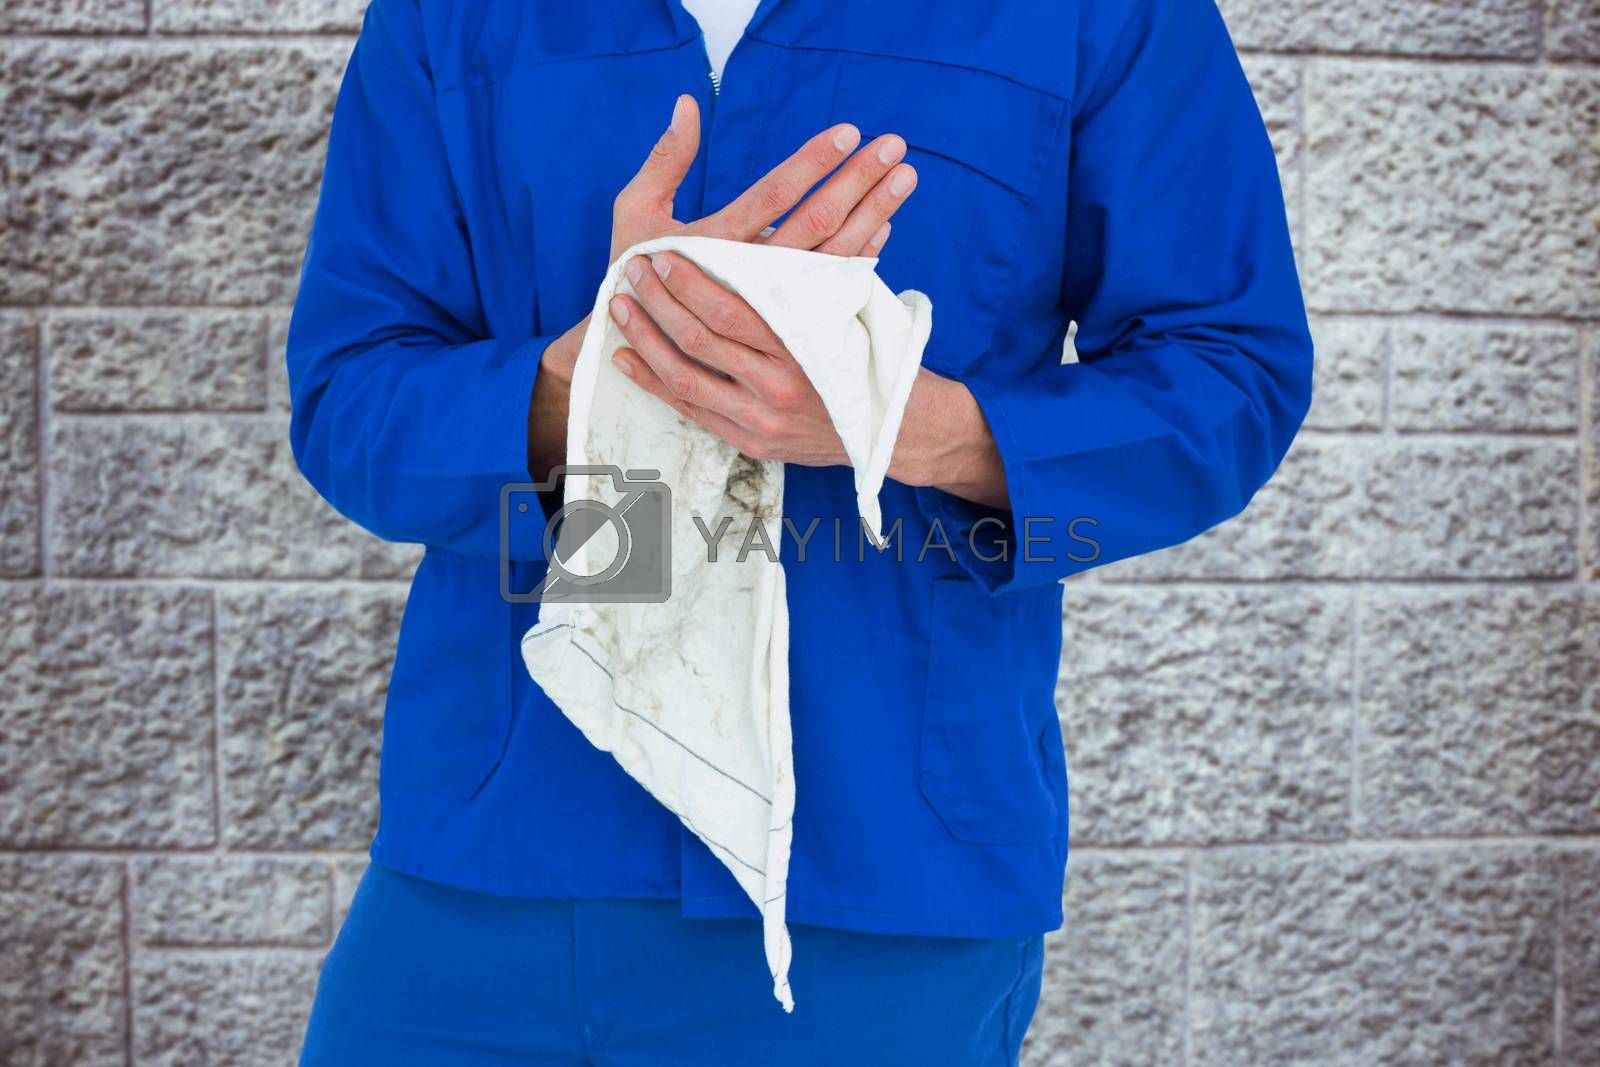 Cropped image of mechanic wiping hand with napkin against grey brick wall